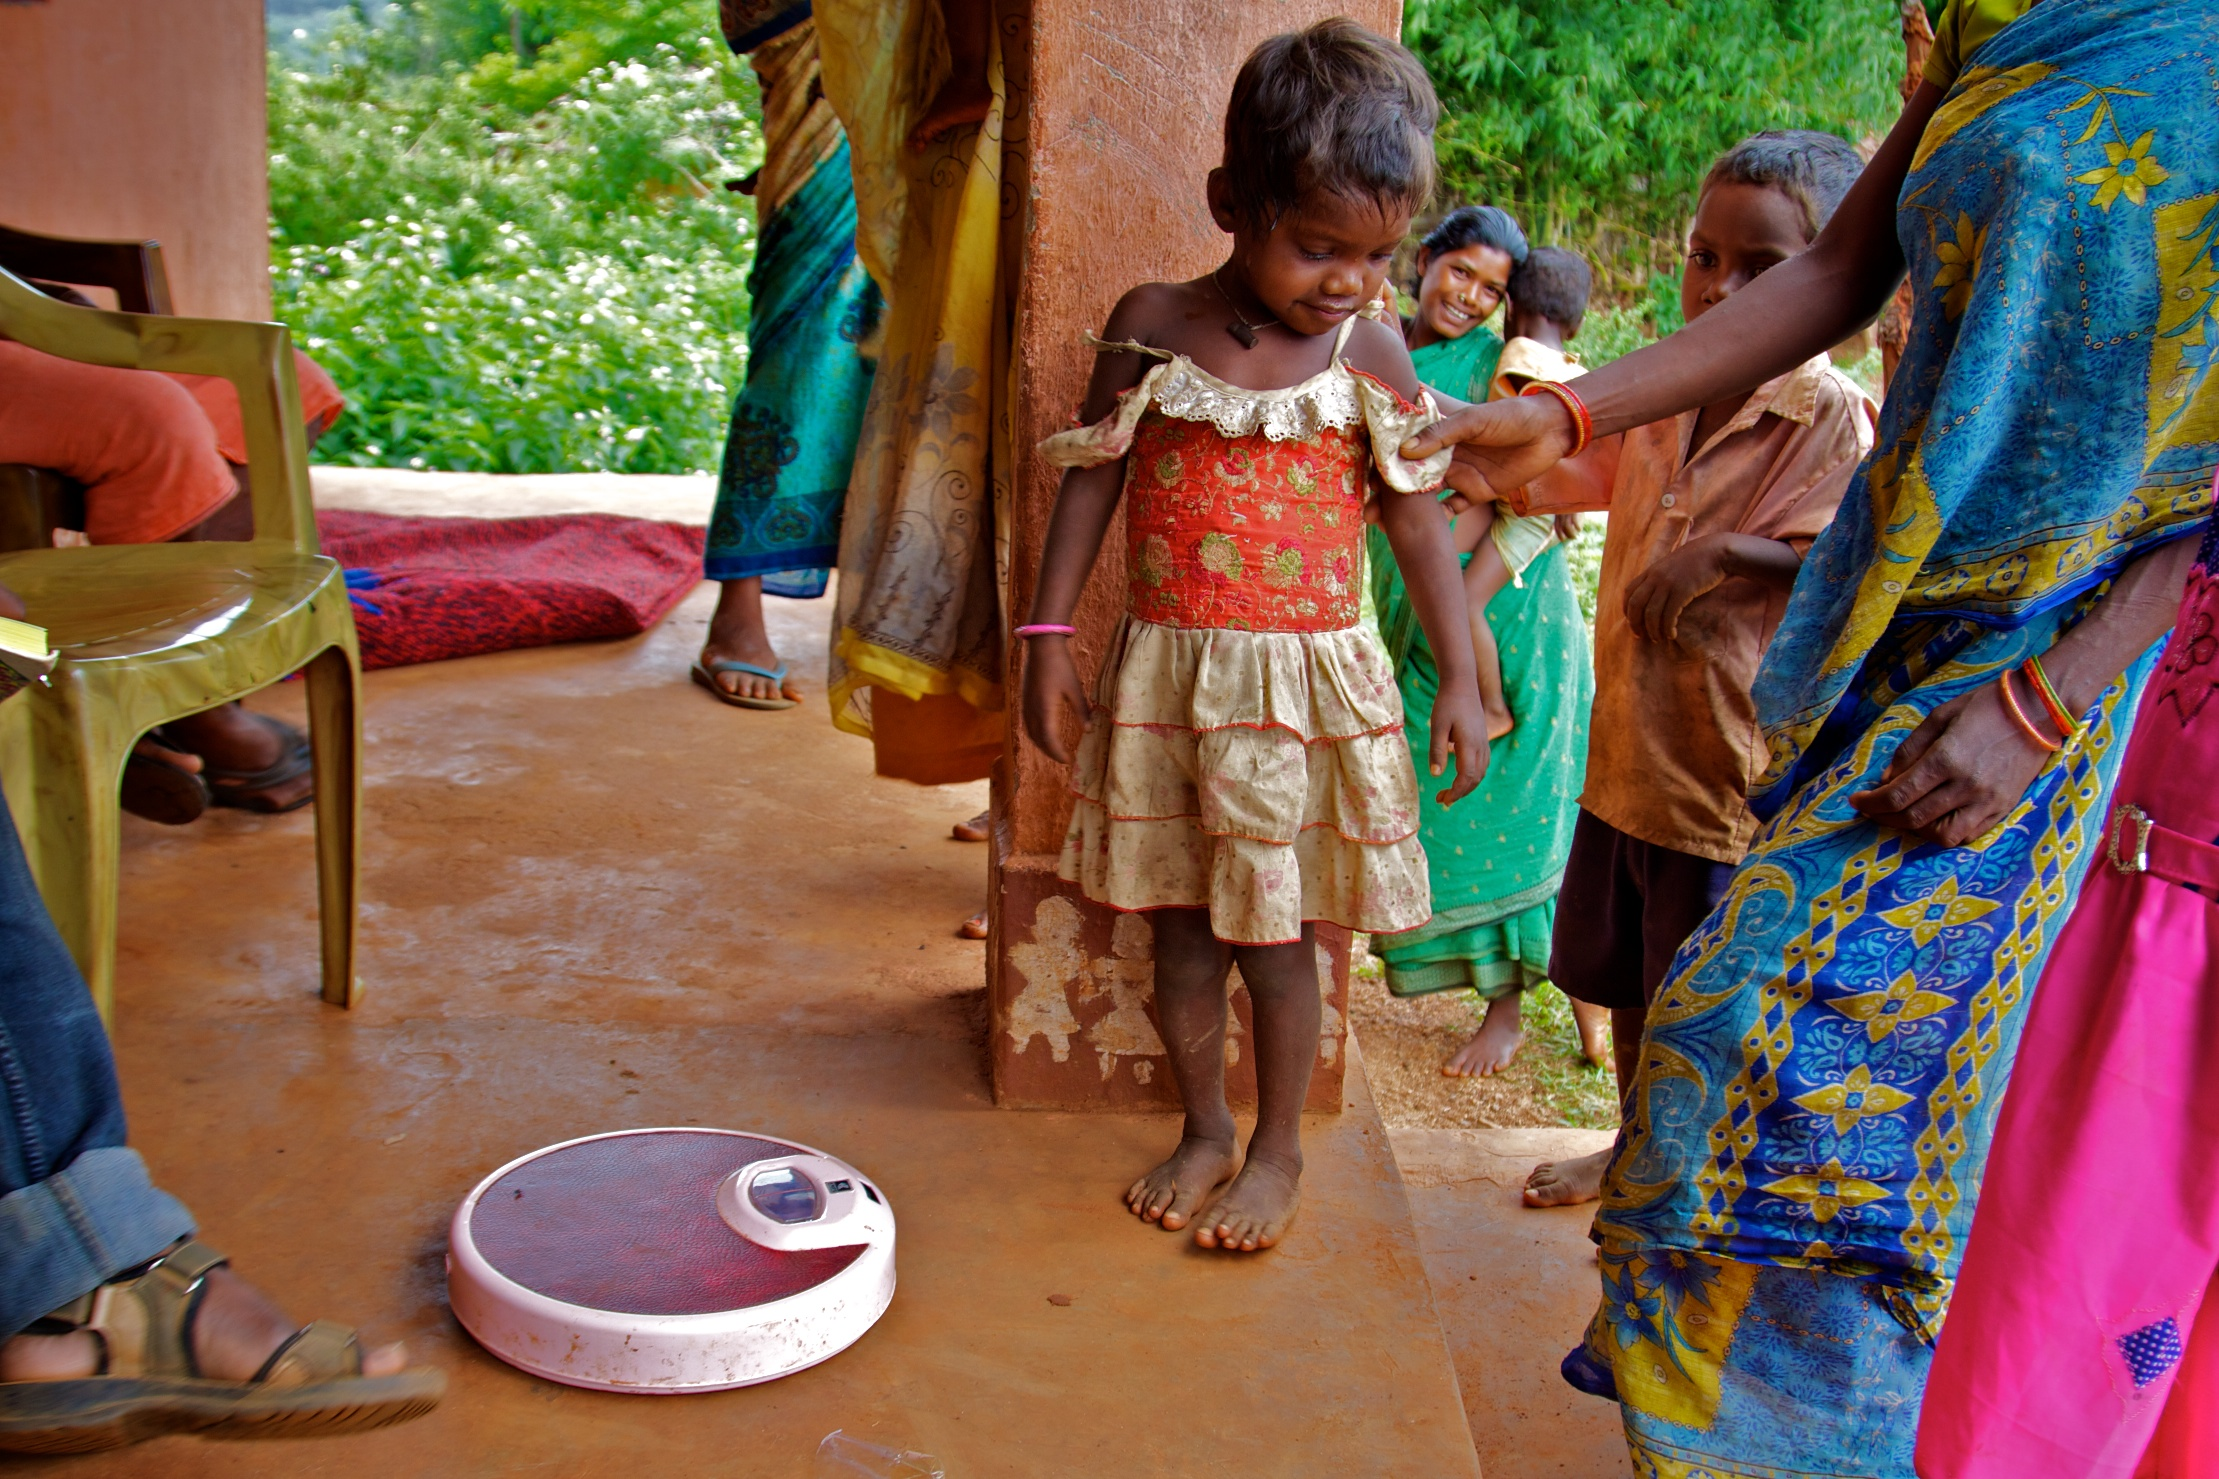 A young Indian girl child standing next to a weighing scale